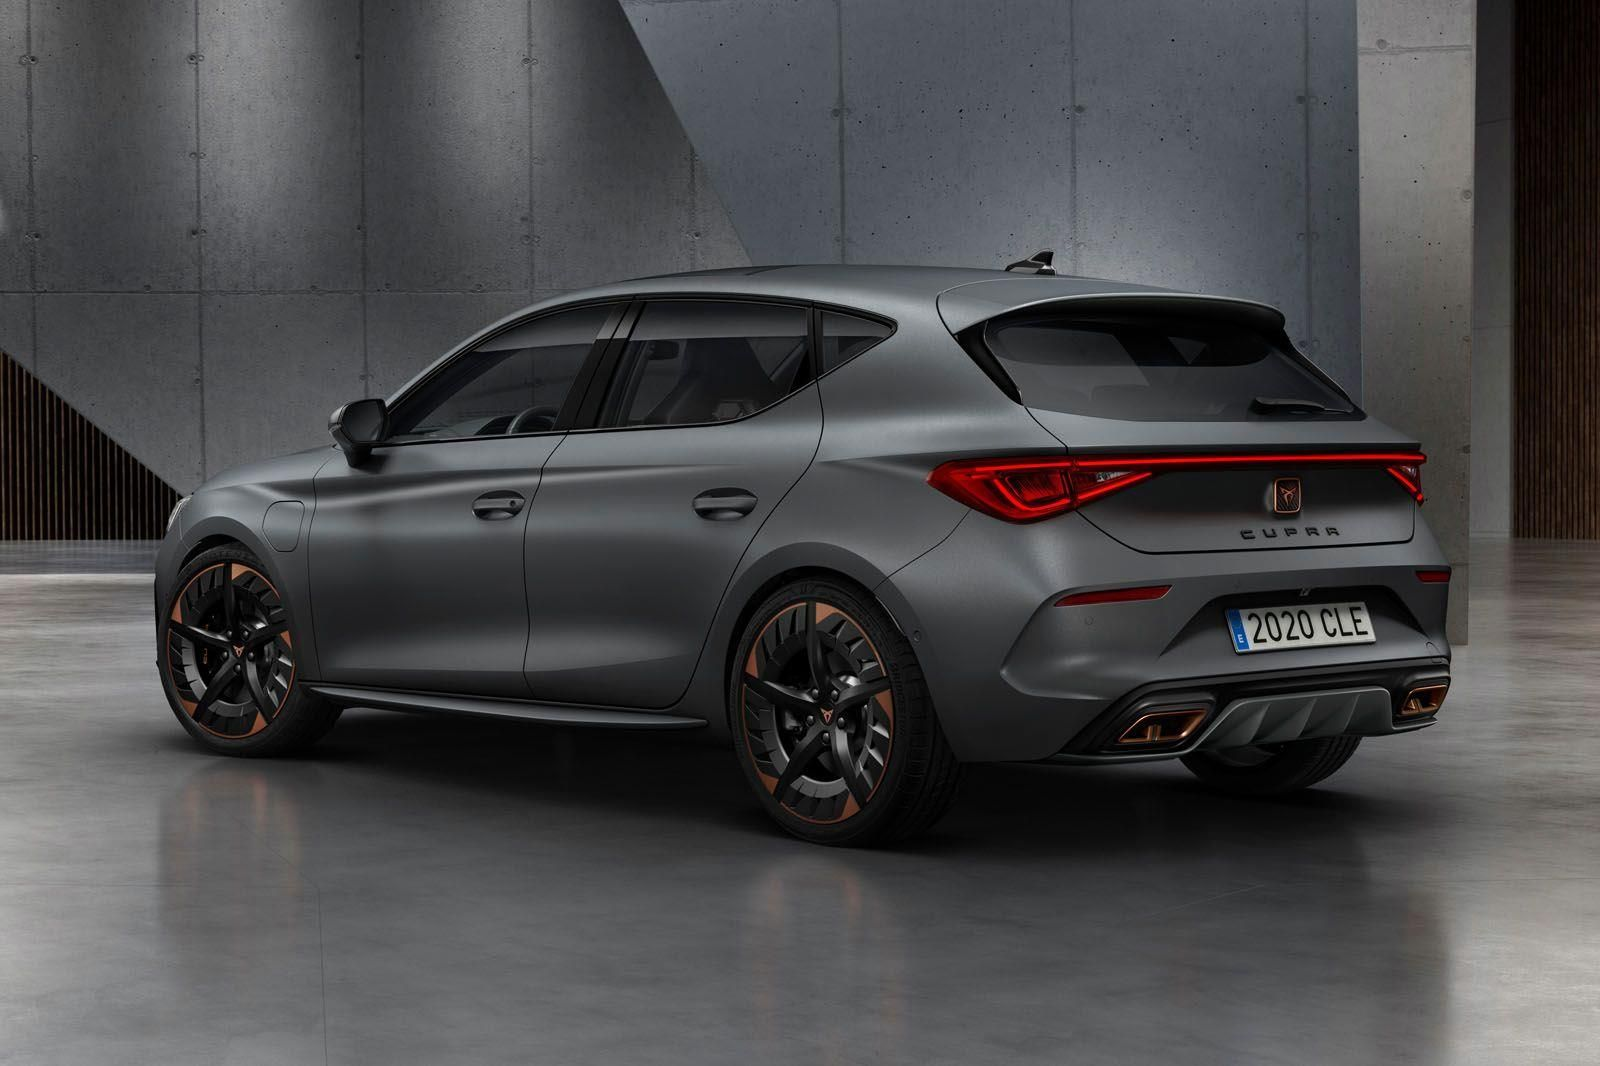 Cupra Hatchback Factory Issued Photo 2020 In 2020